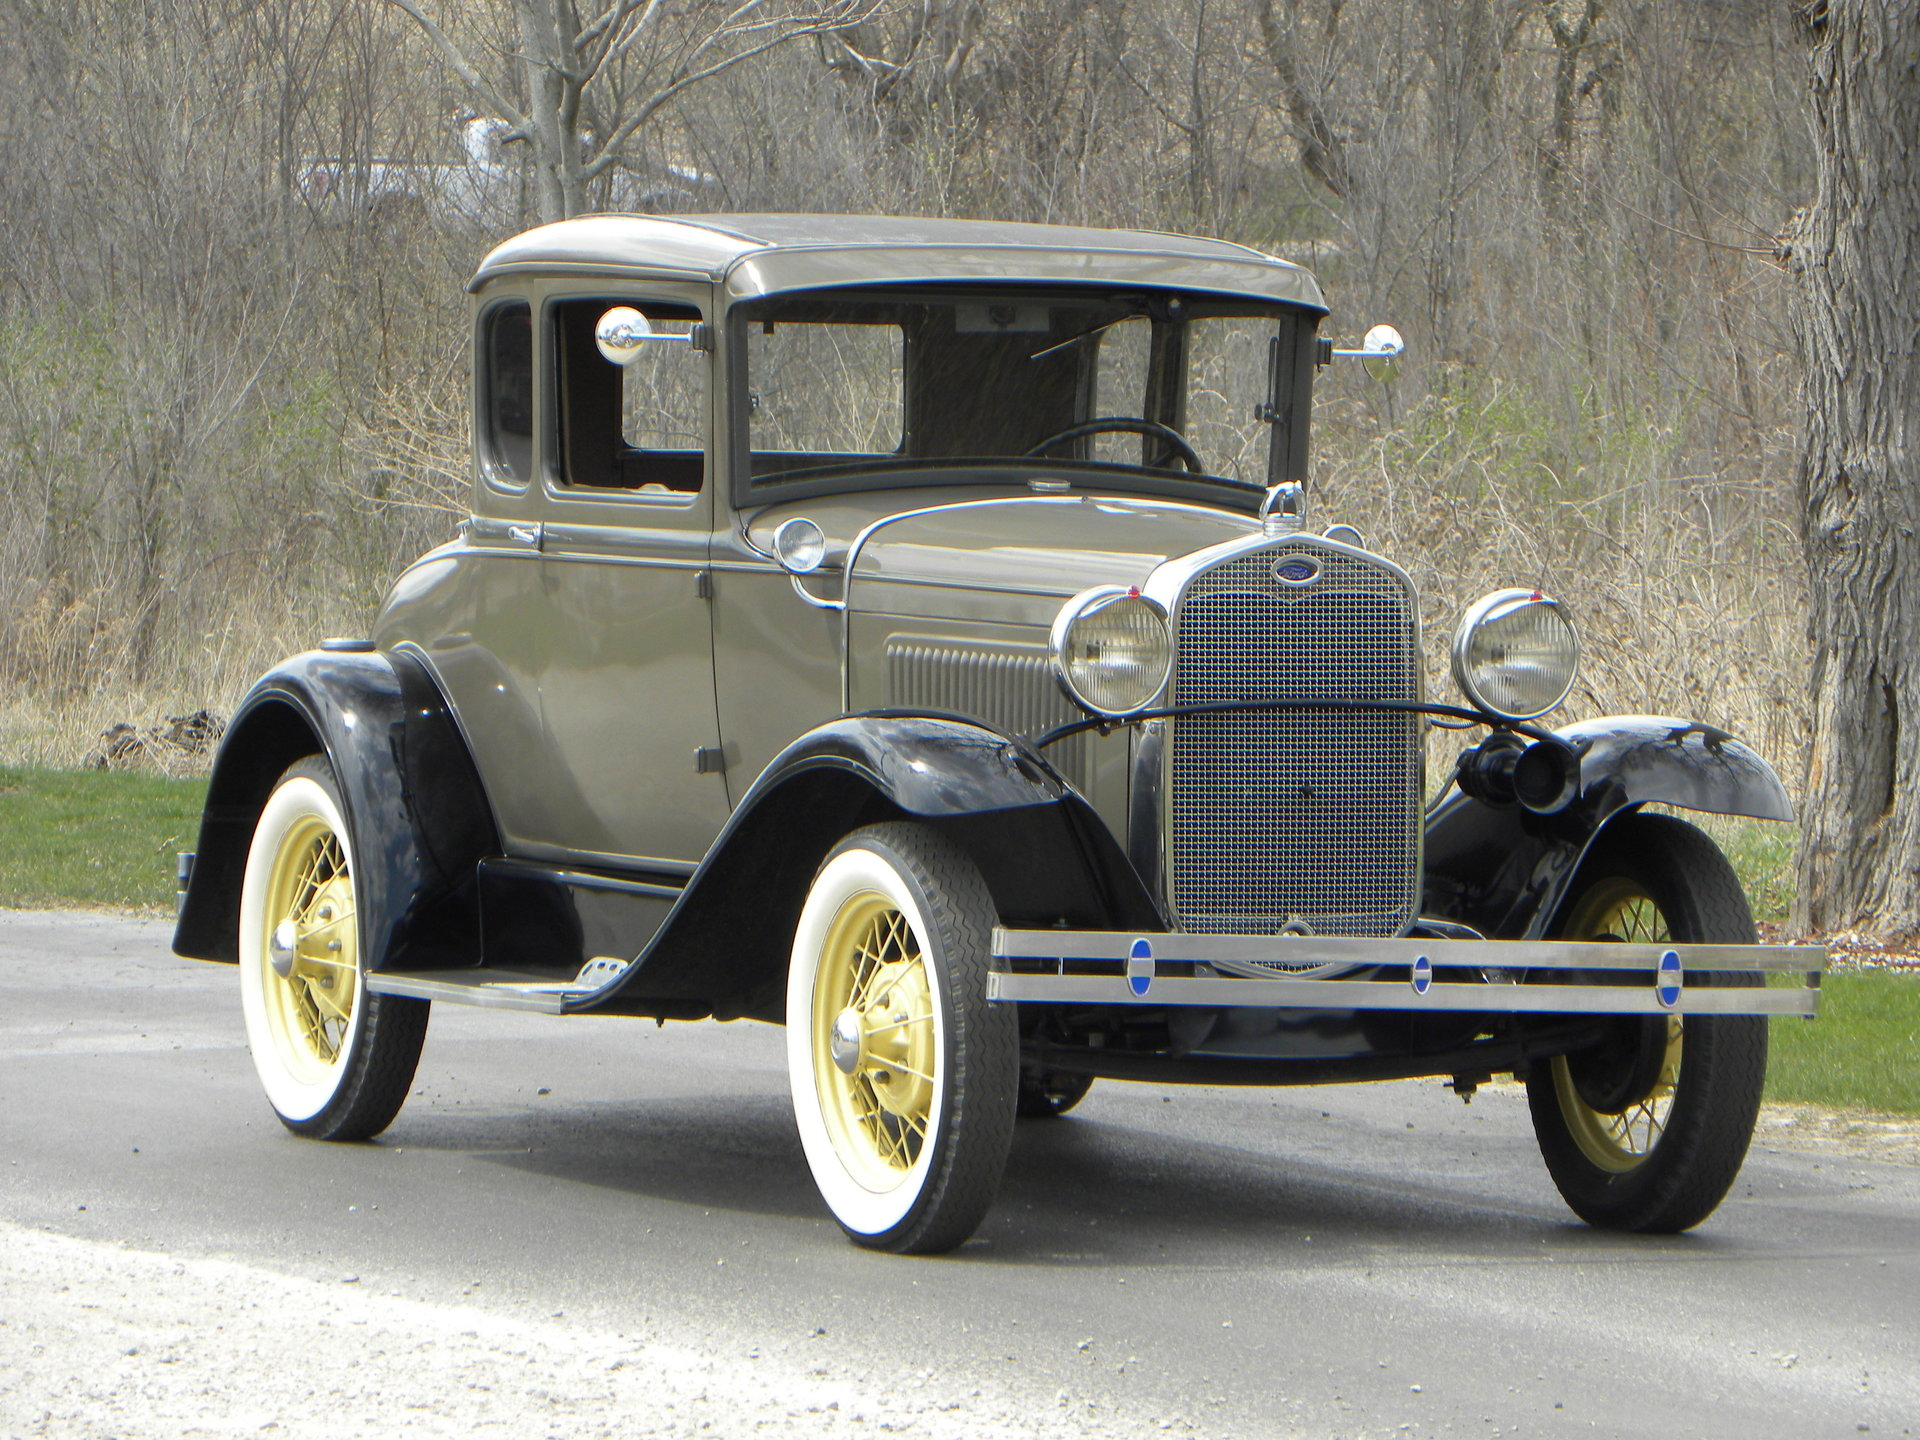 368485c5ddeaf5 hd 1931 ford model a coupe